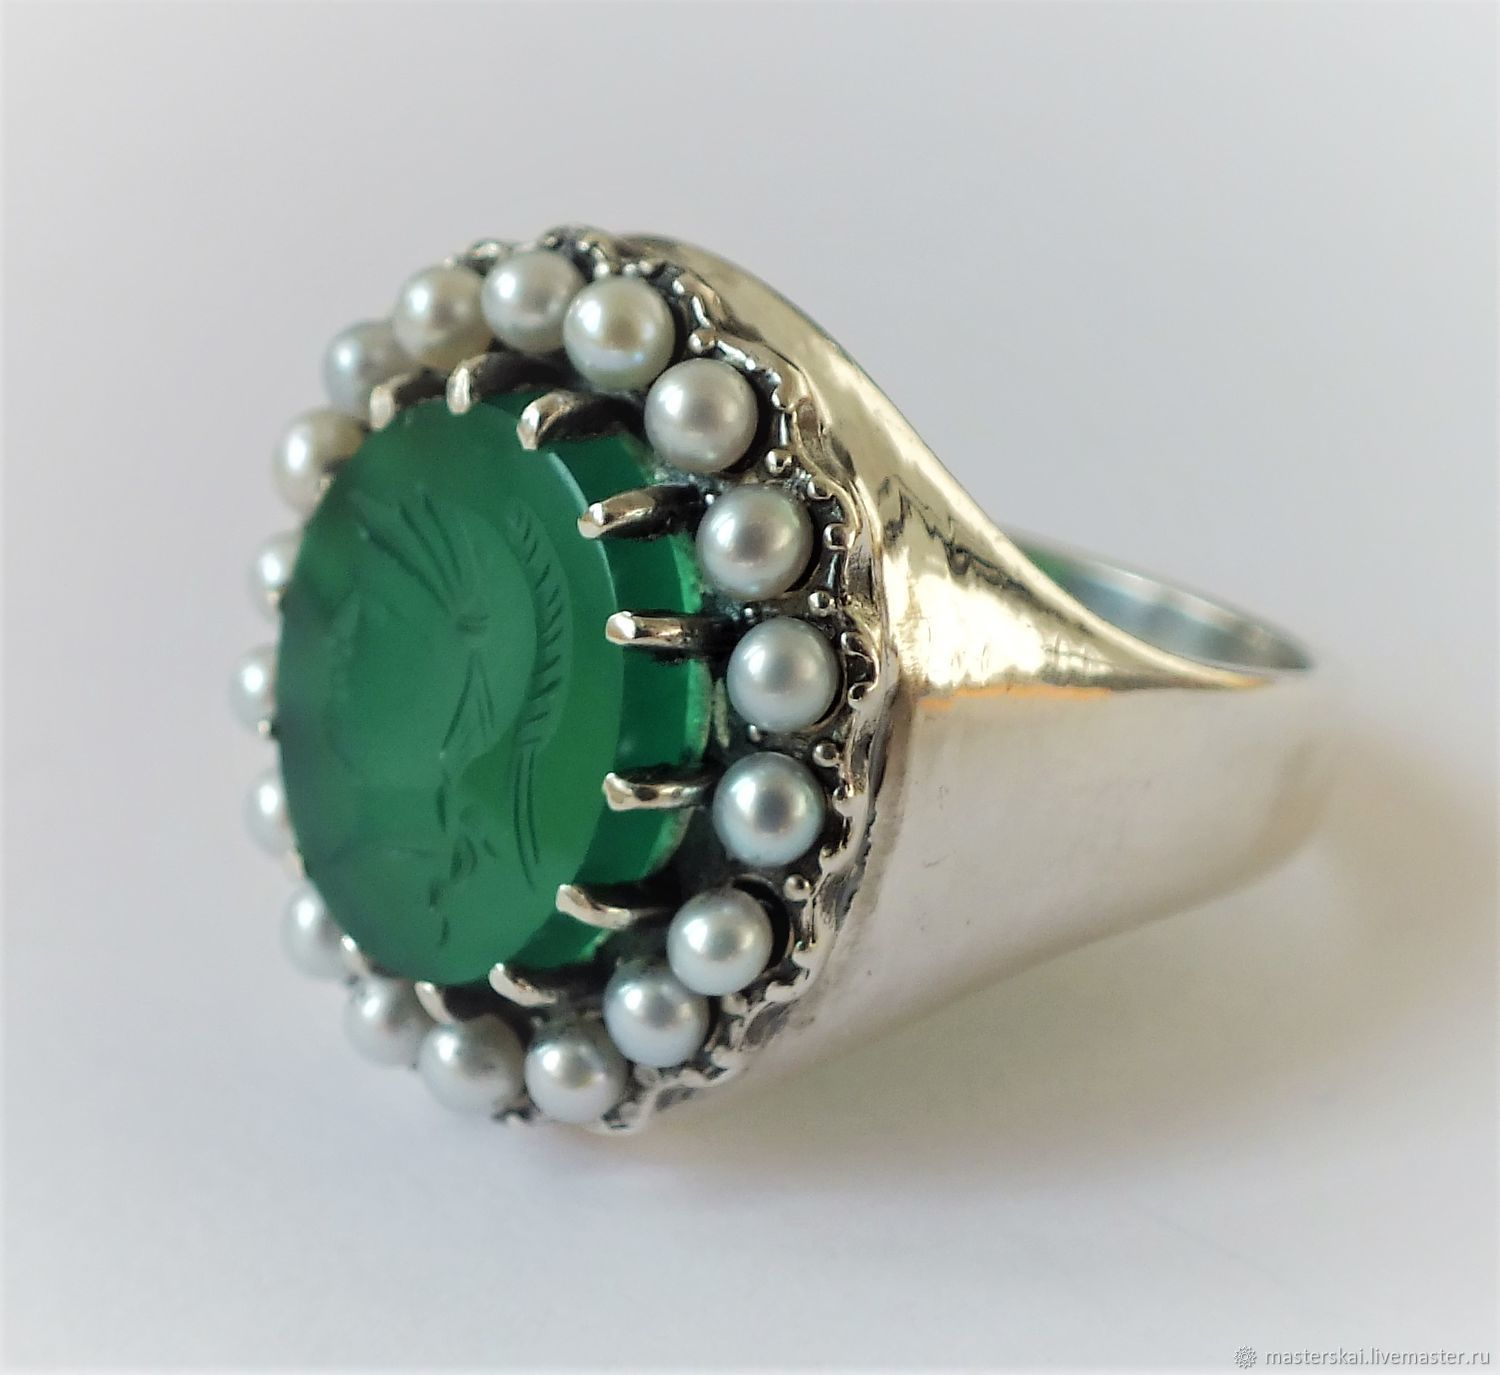 Ring 'anetta' - pearl, 925 silver, Rings, Moscow,  Фото №1